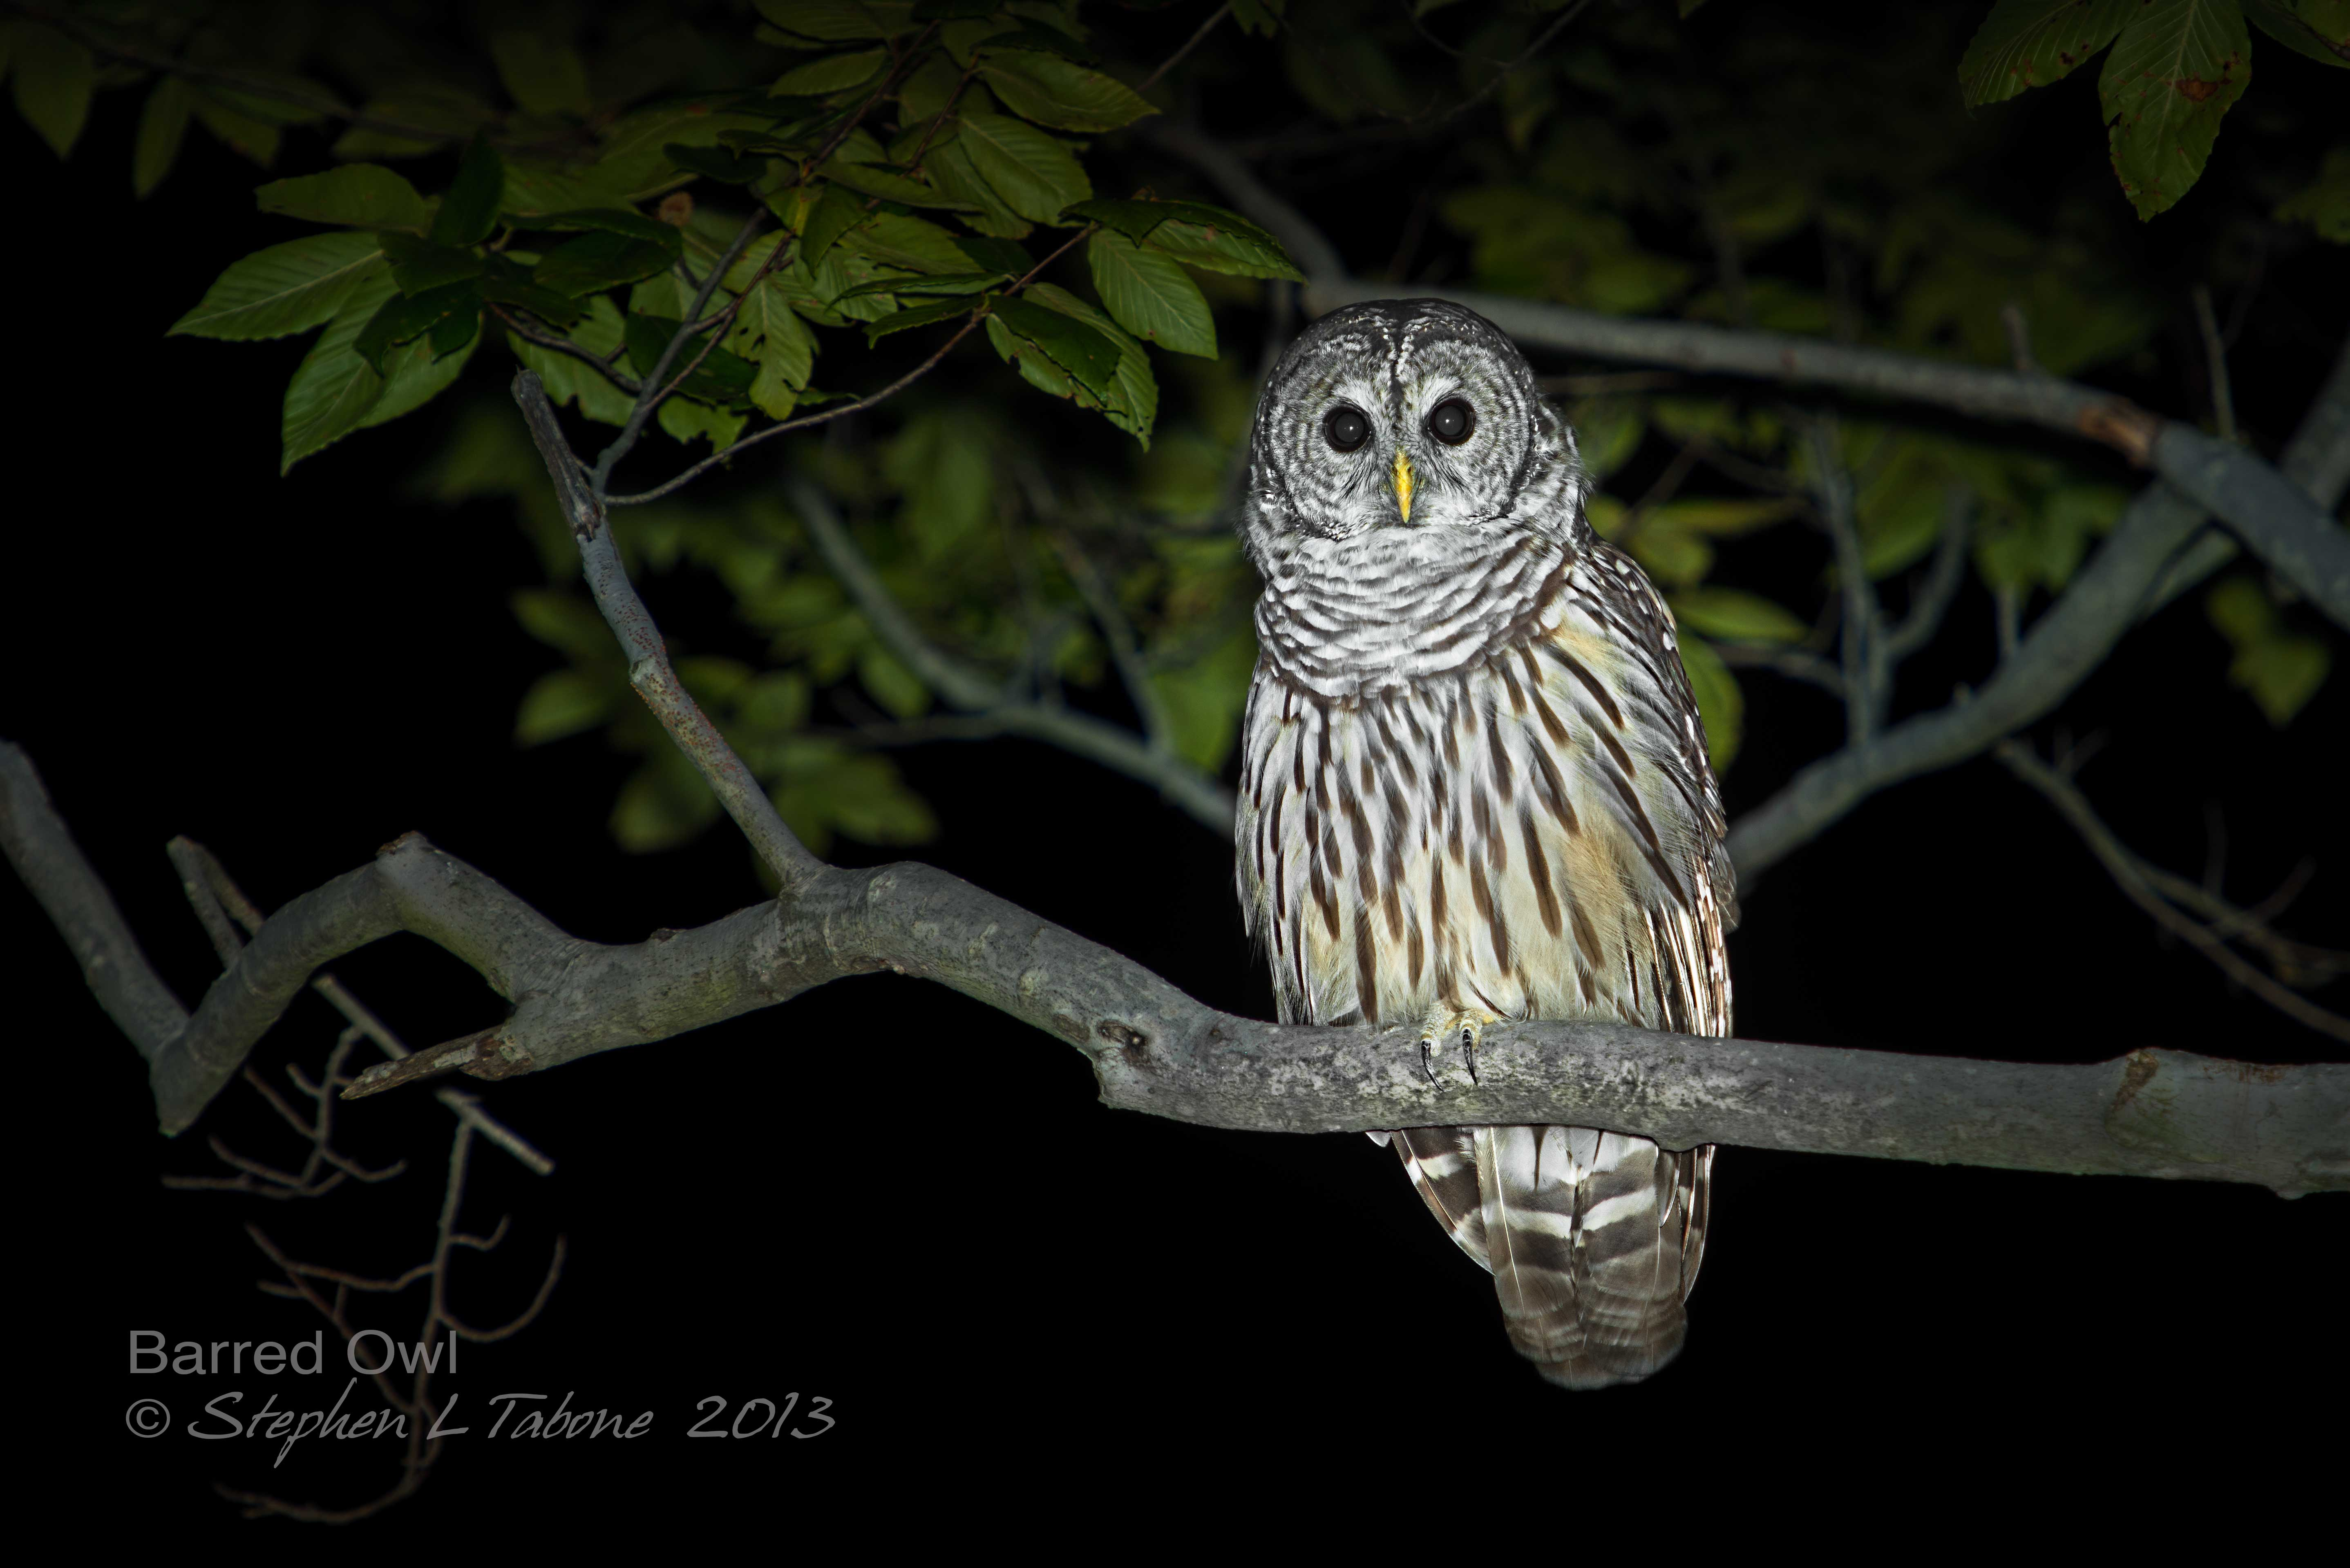 Images of Barred Owl Sounds At Night - #rock-cafe